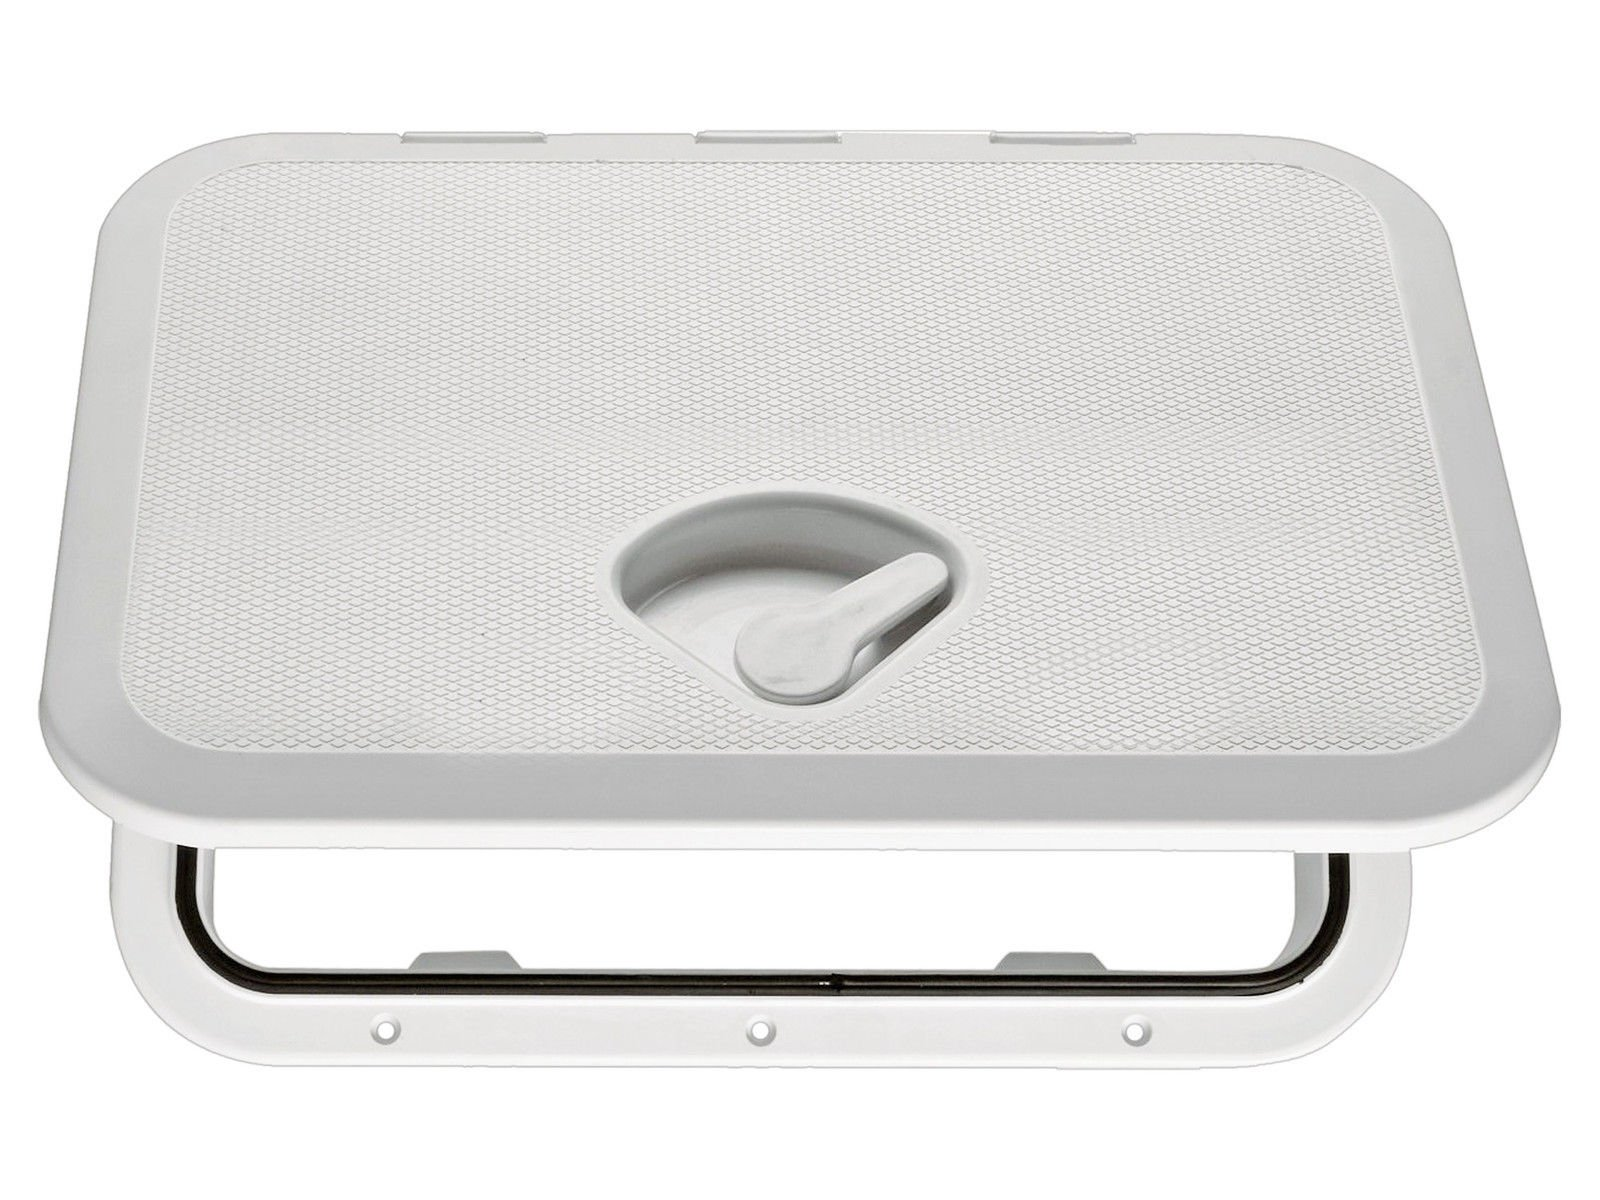 Seaflo Marine Boat Deck Access Hatch & Lid 14.75'' x 10.6'', White, 270mm x 375mm